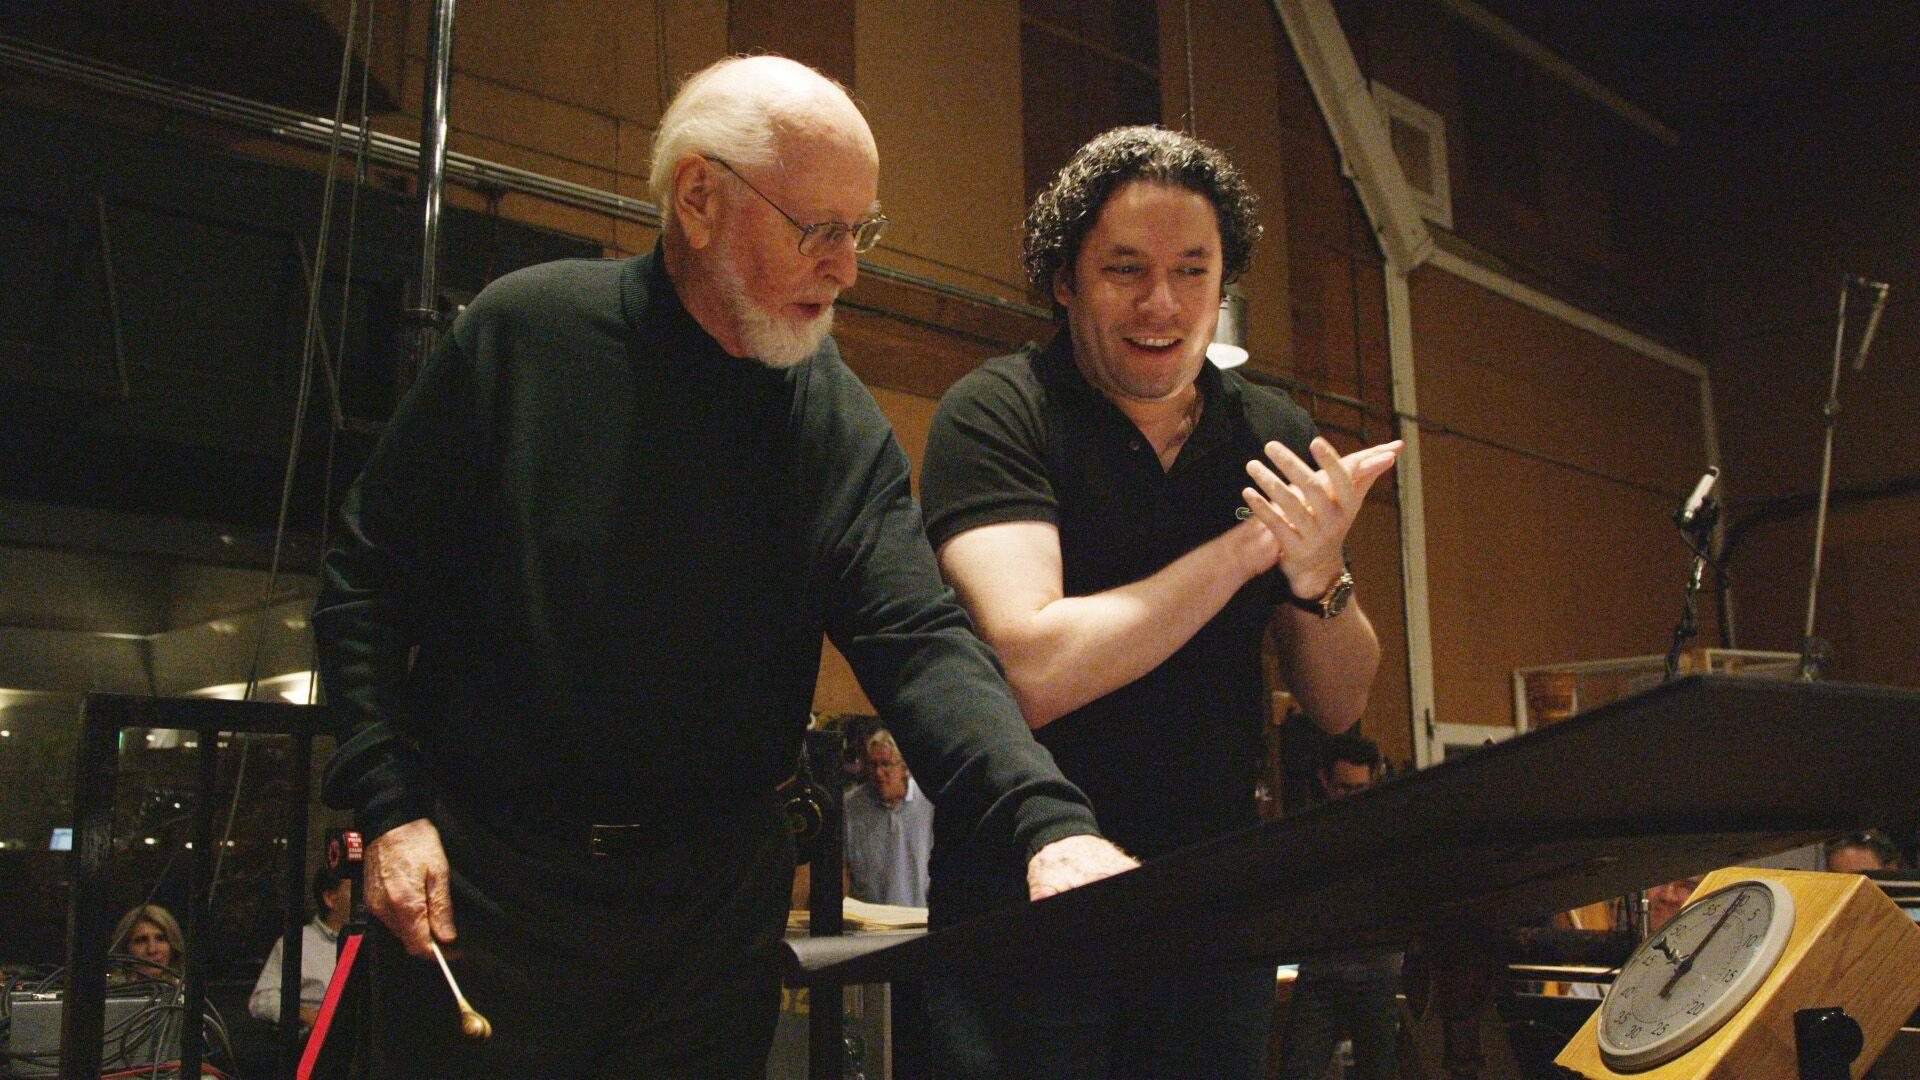 Composer John Williams, left, confers with conductor Gustavo Dudamel about the score for